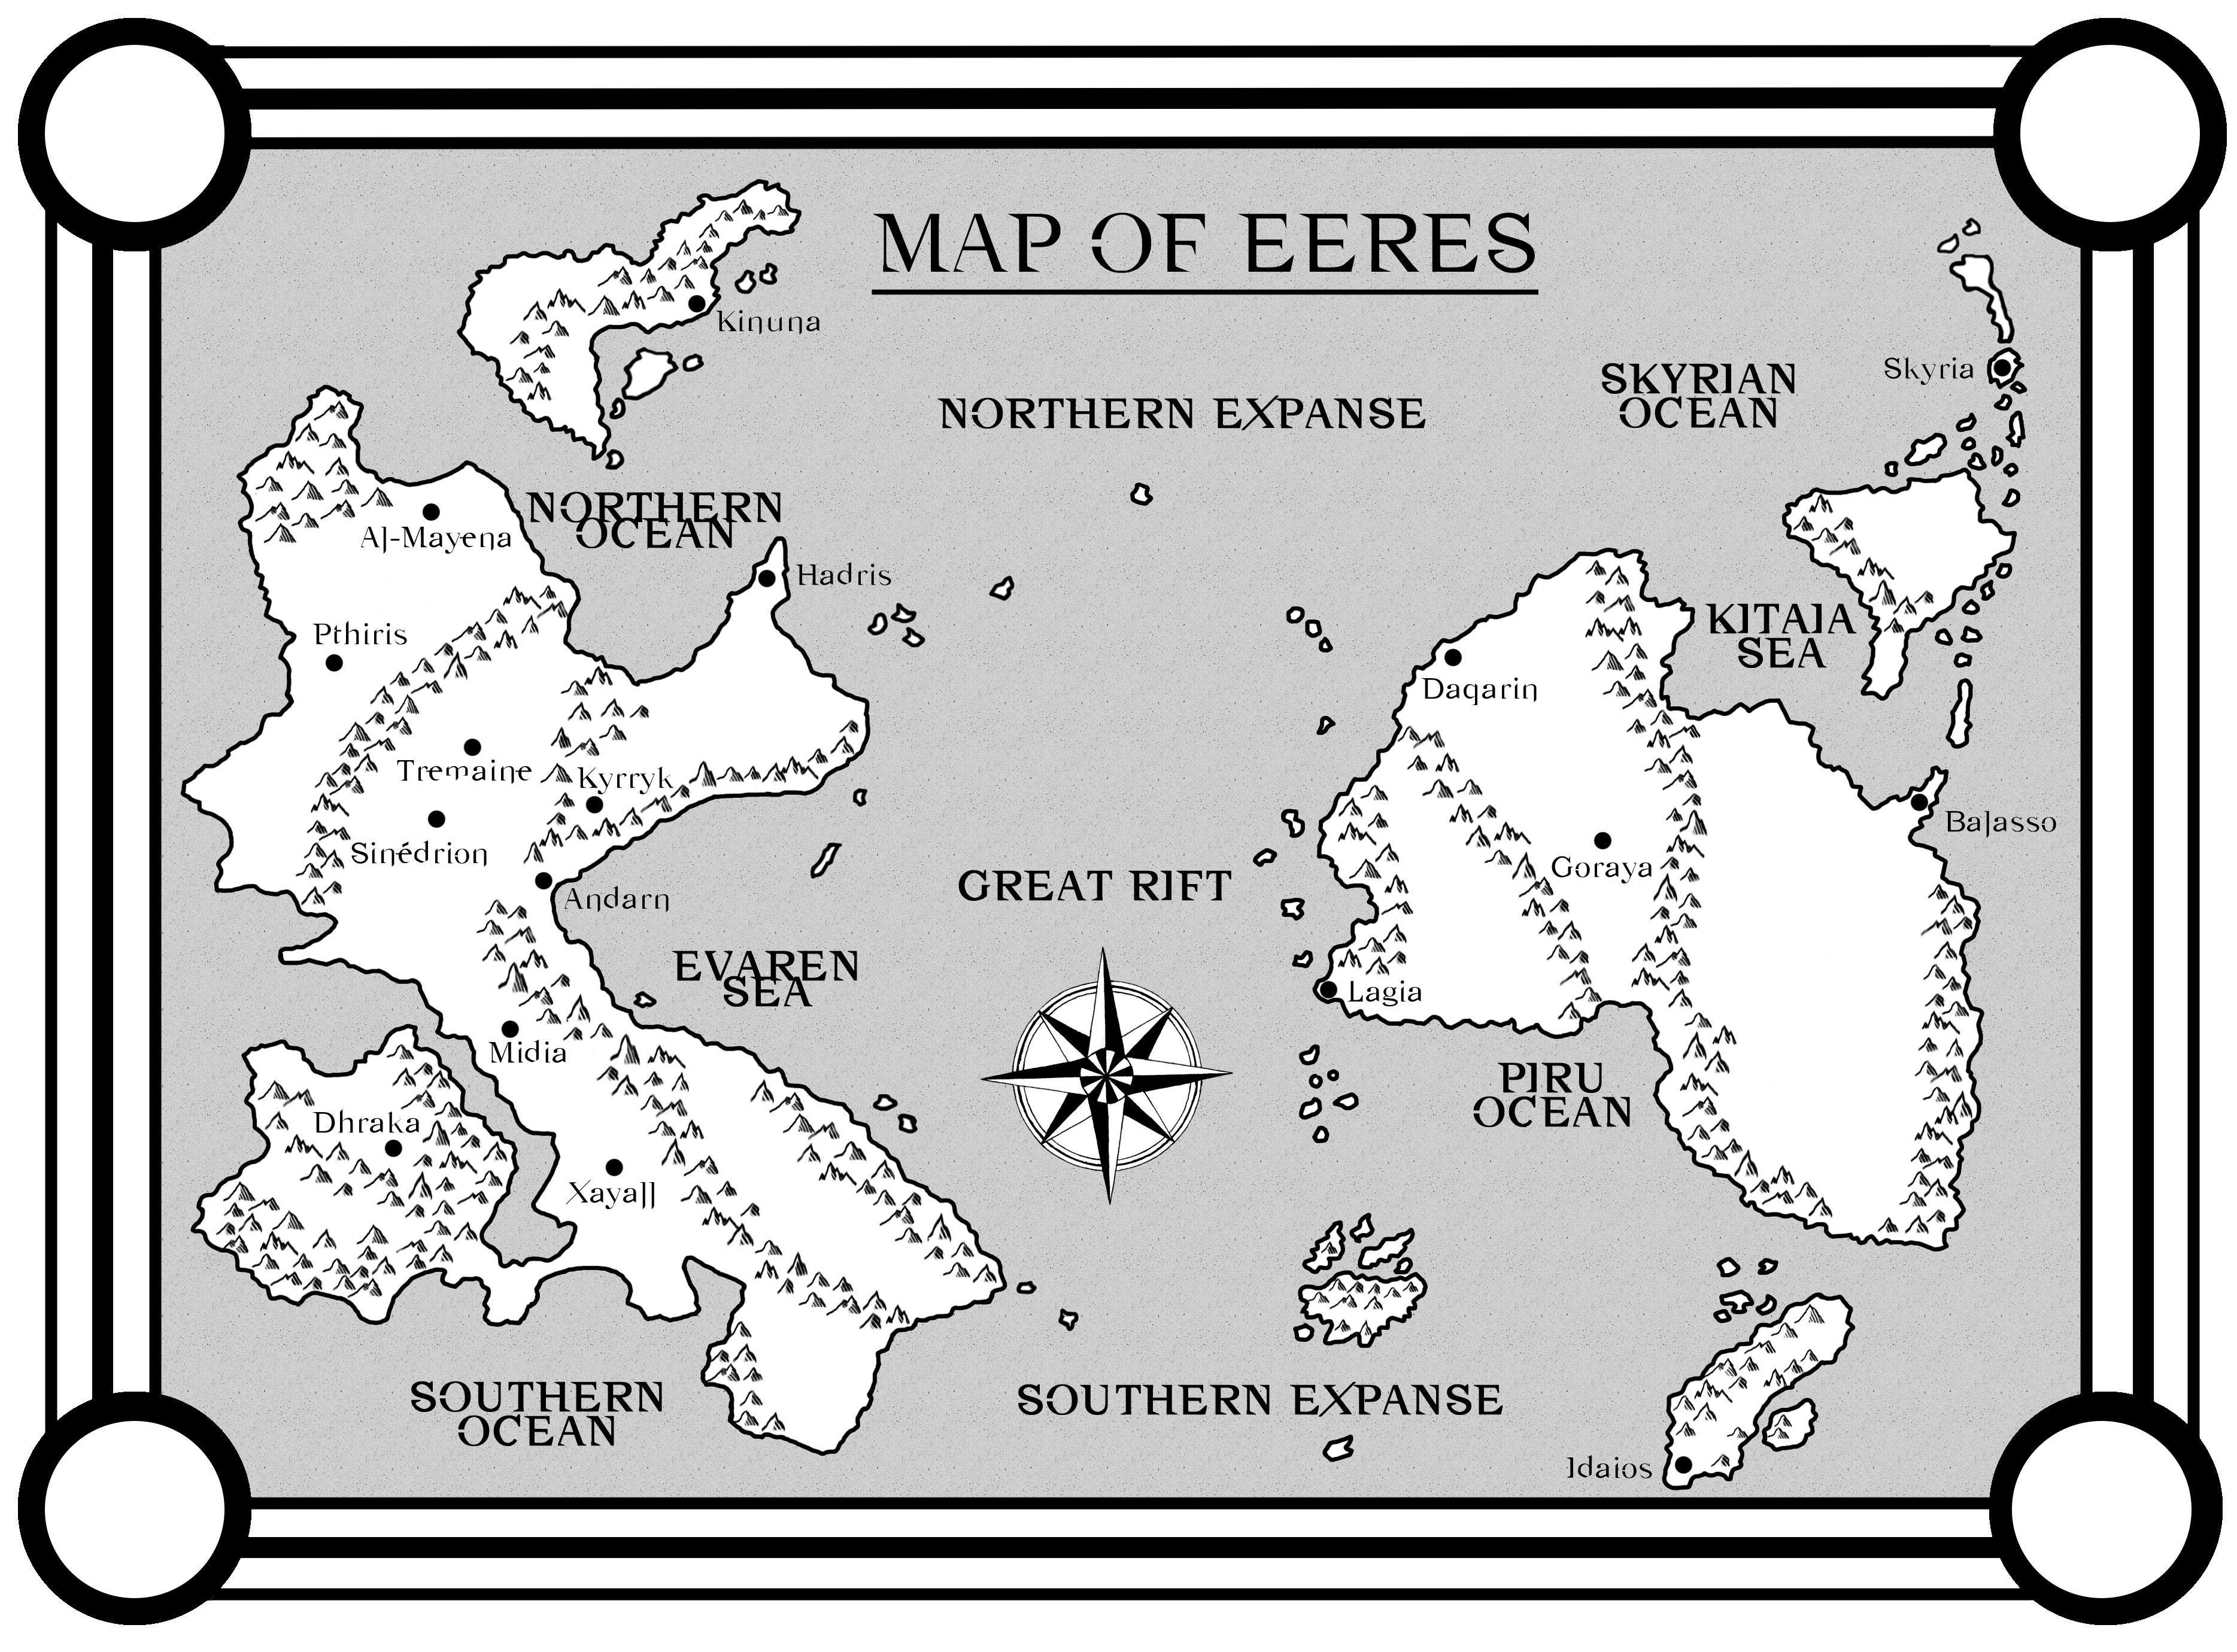 High resolution version of the Eeres Map, for your viewing pleasure.